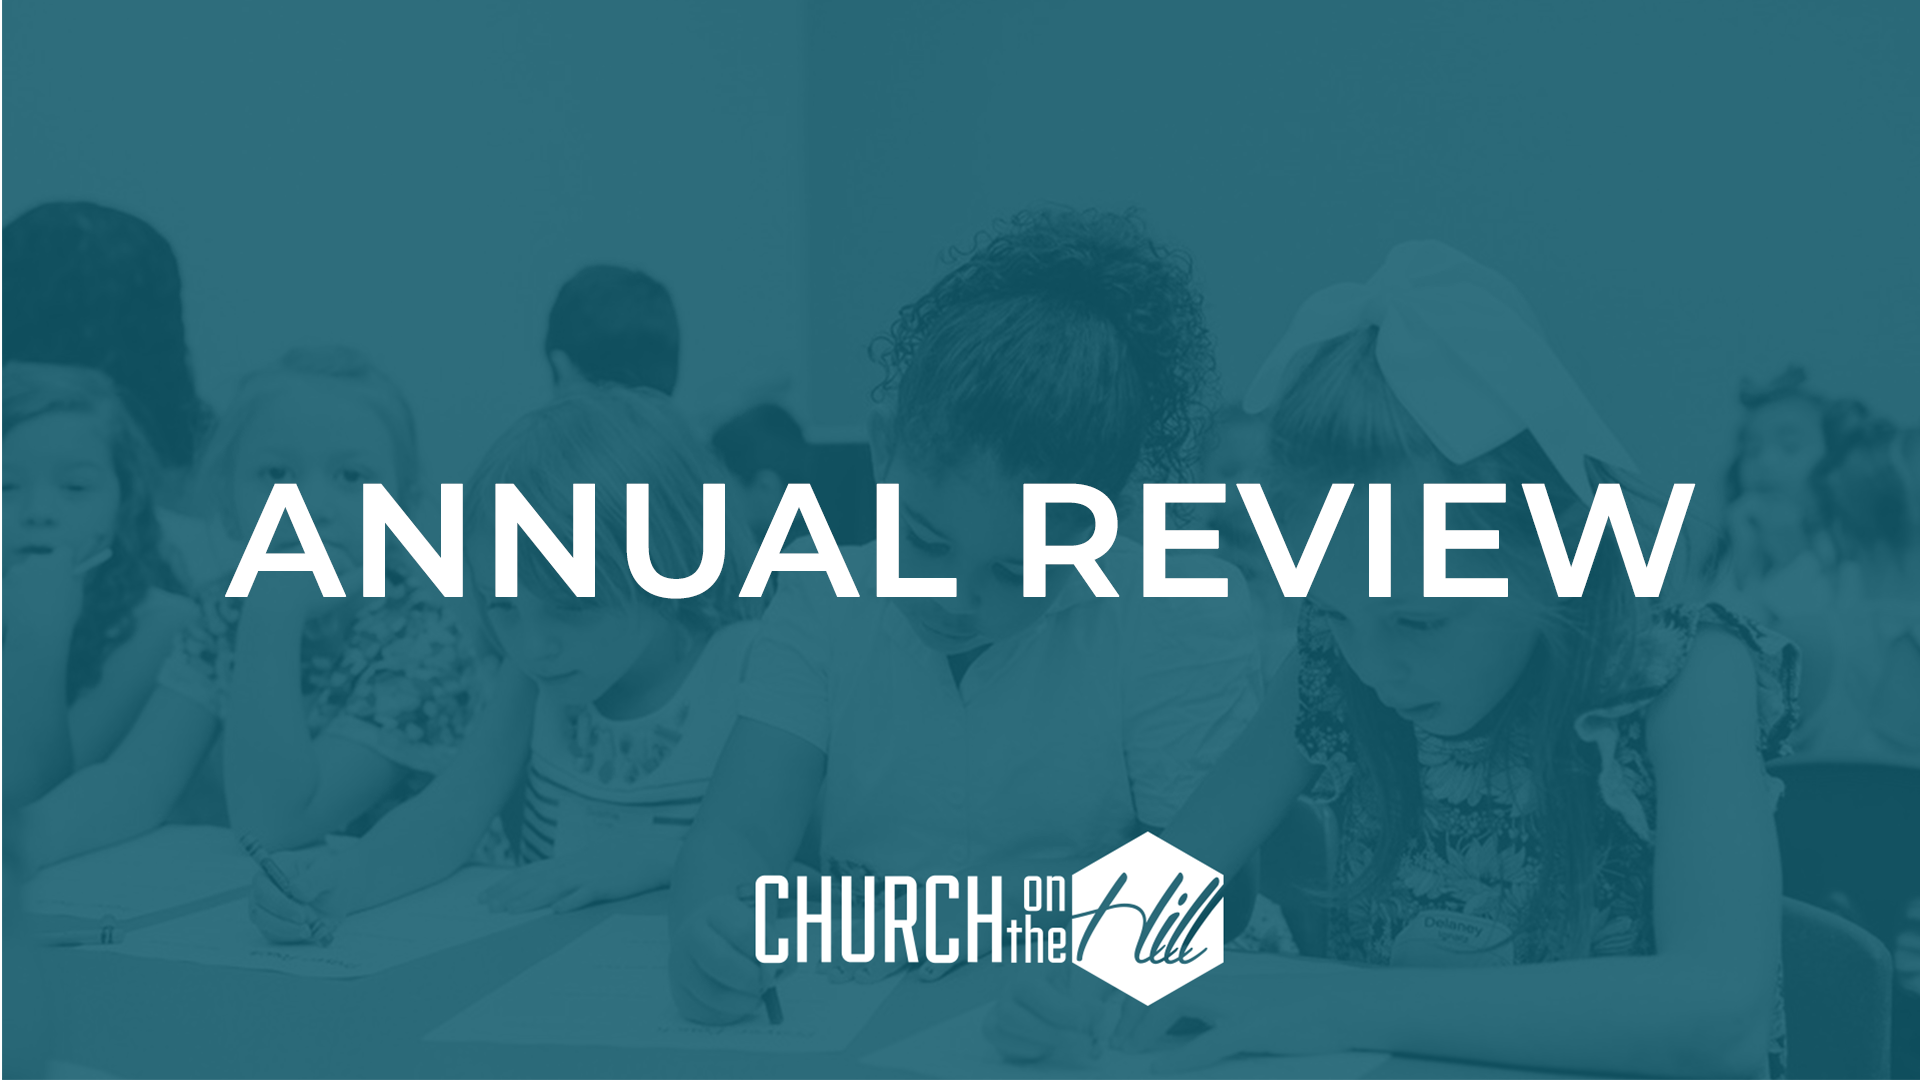 Annual Review SlidesC copy.png